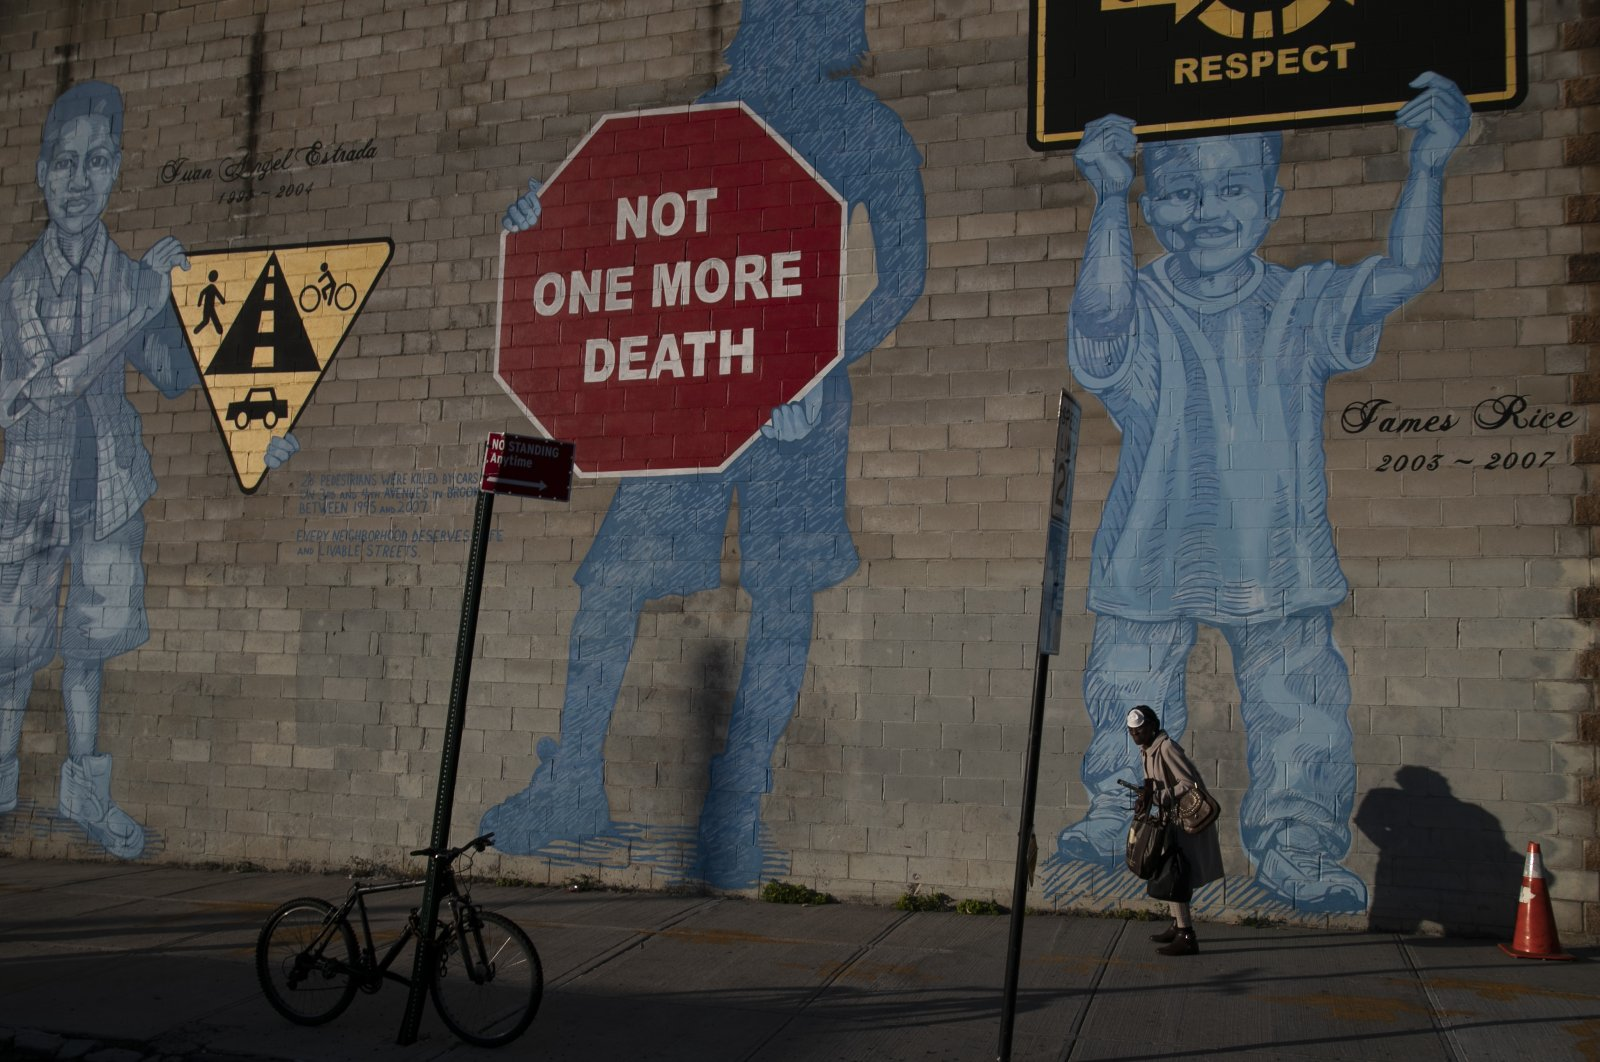 A woman with a face mask walks past a mural in the Brooklyn borough of New York City, March 27, 2020. (AP Photo)